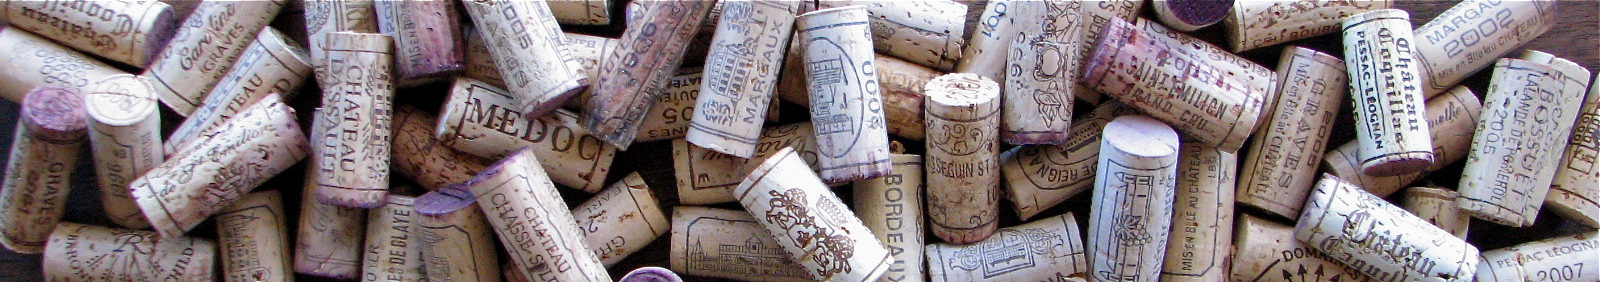 DiscoverVin About us-wine corks